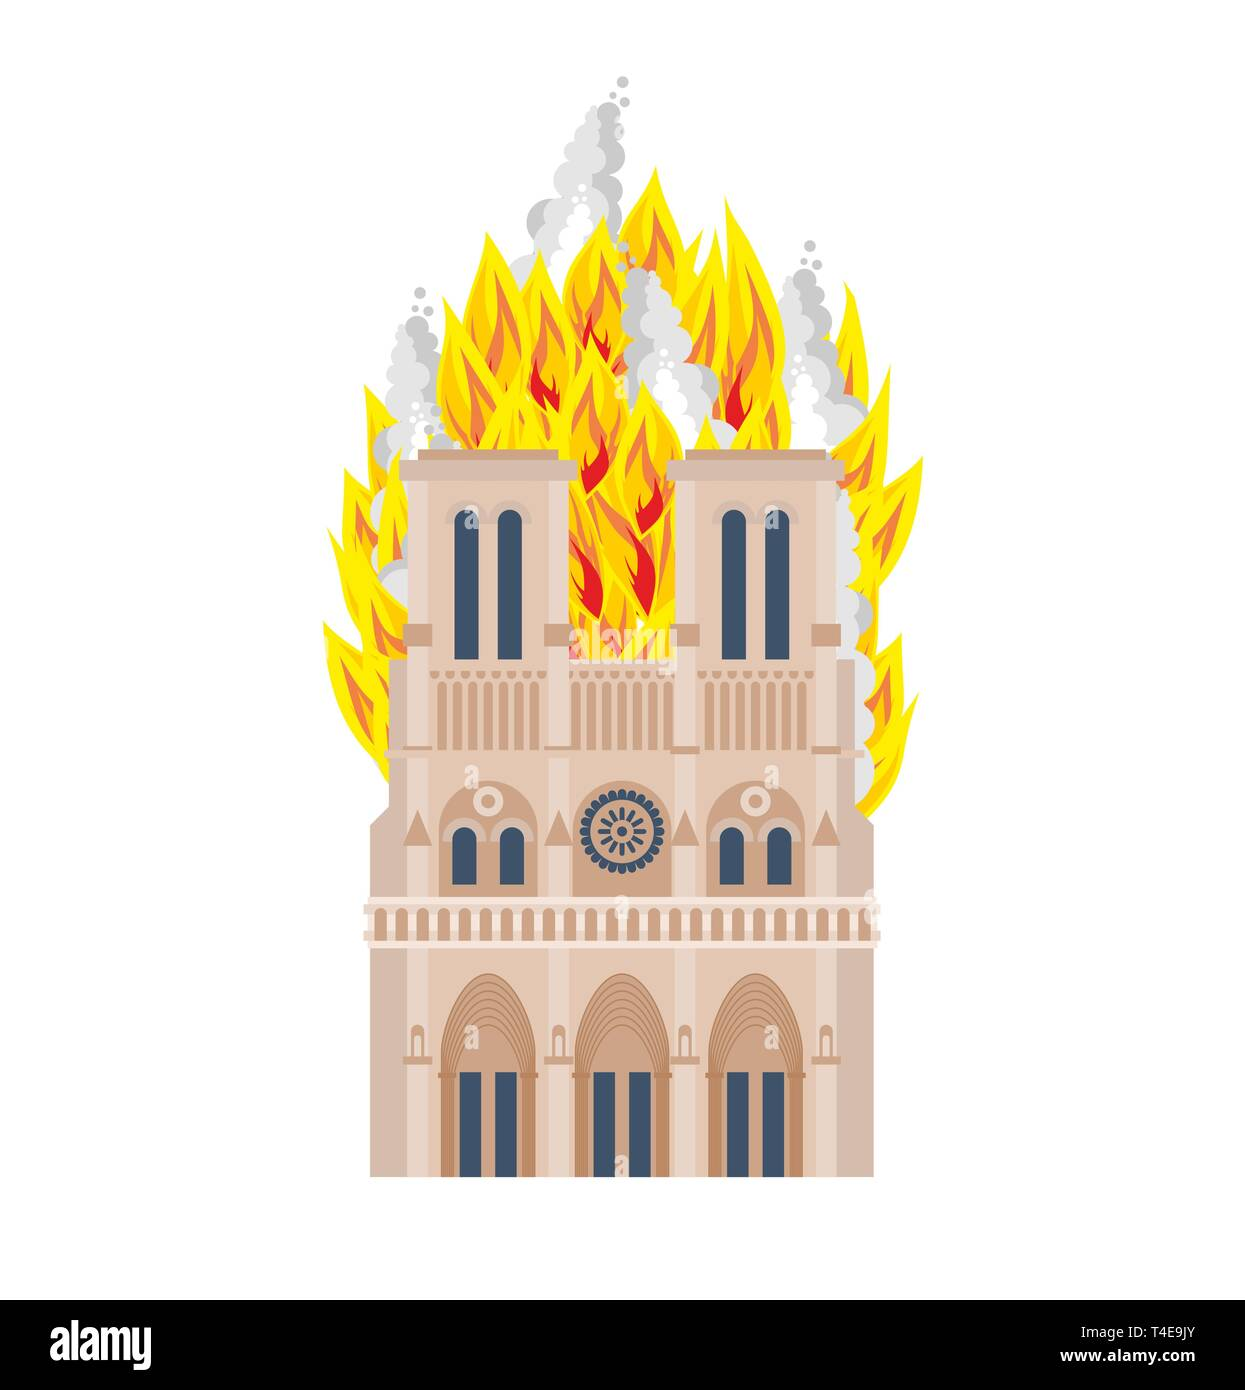 Notre Dame de Paris Fire. Burning roof of historic building in France. housetop flame - Stock Image